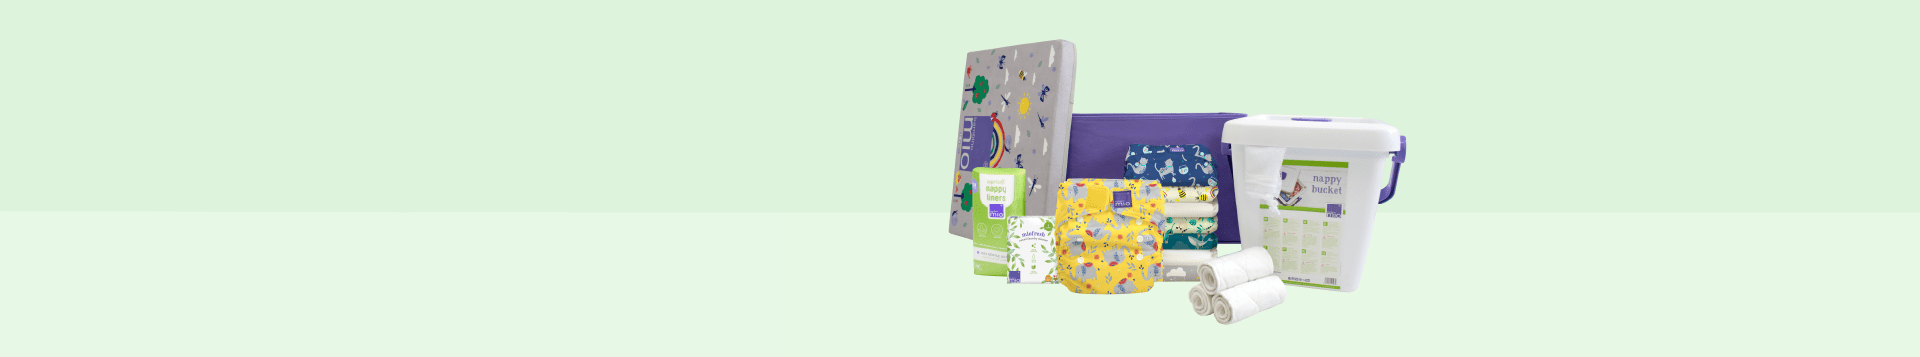 Banner showing the perfect cloth nappy starter set